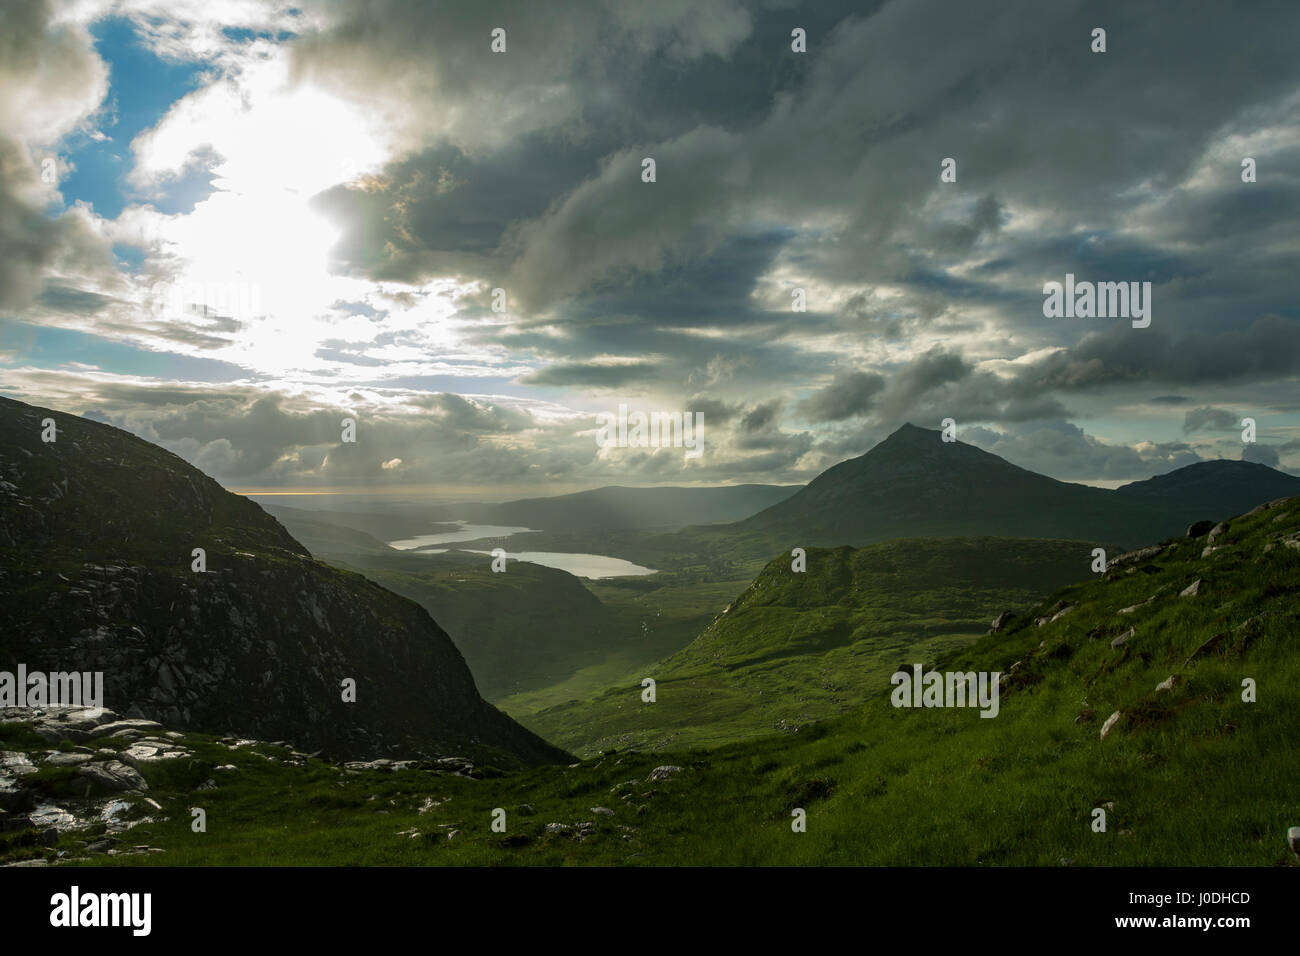 Dunlewy Lough and Errigal over the Poisoned Glen, from Crockfadda, Derryveagh Mountains, County Donegal, Ireland - Stock Image